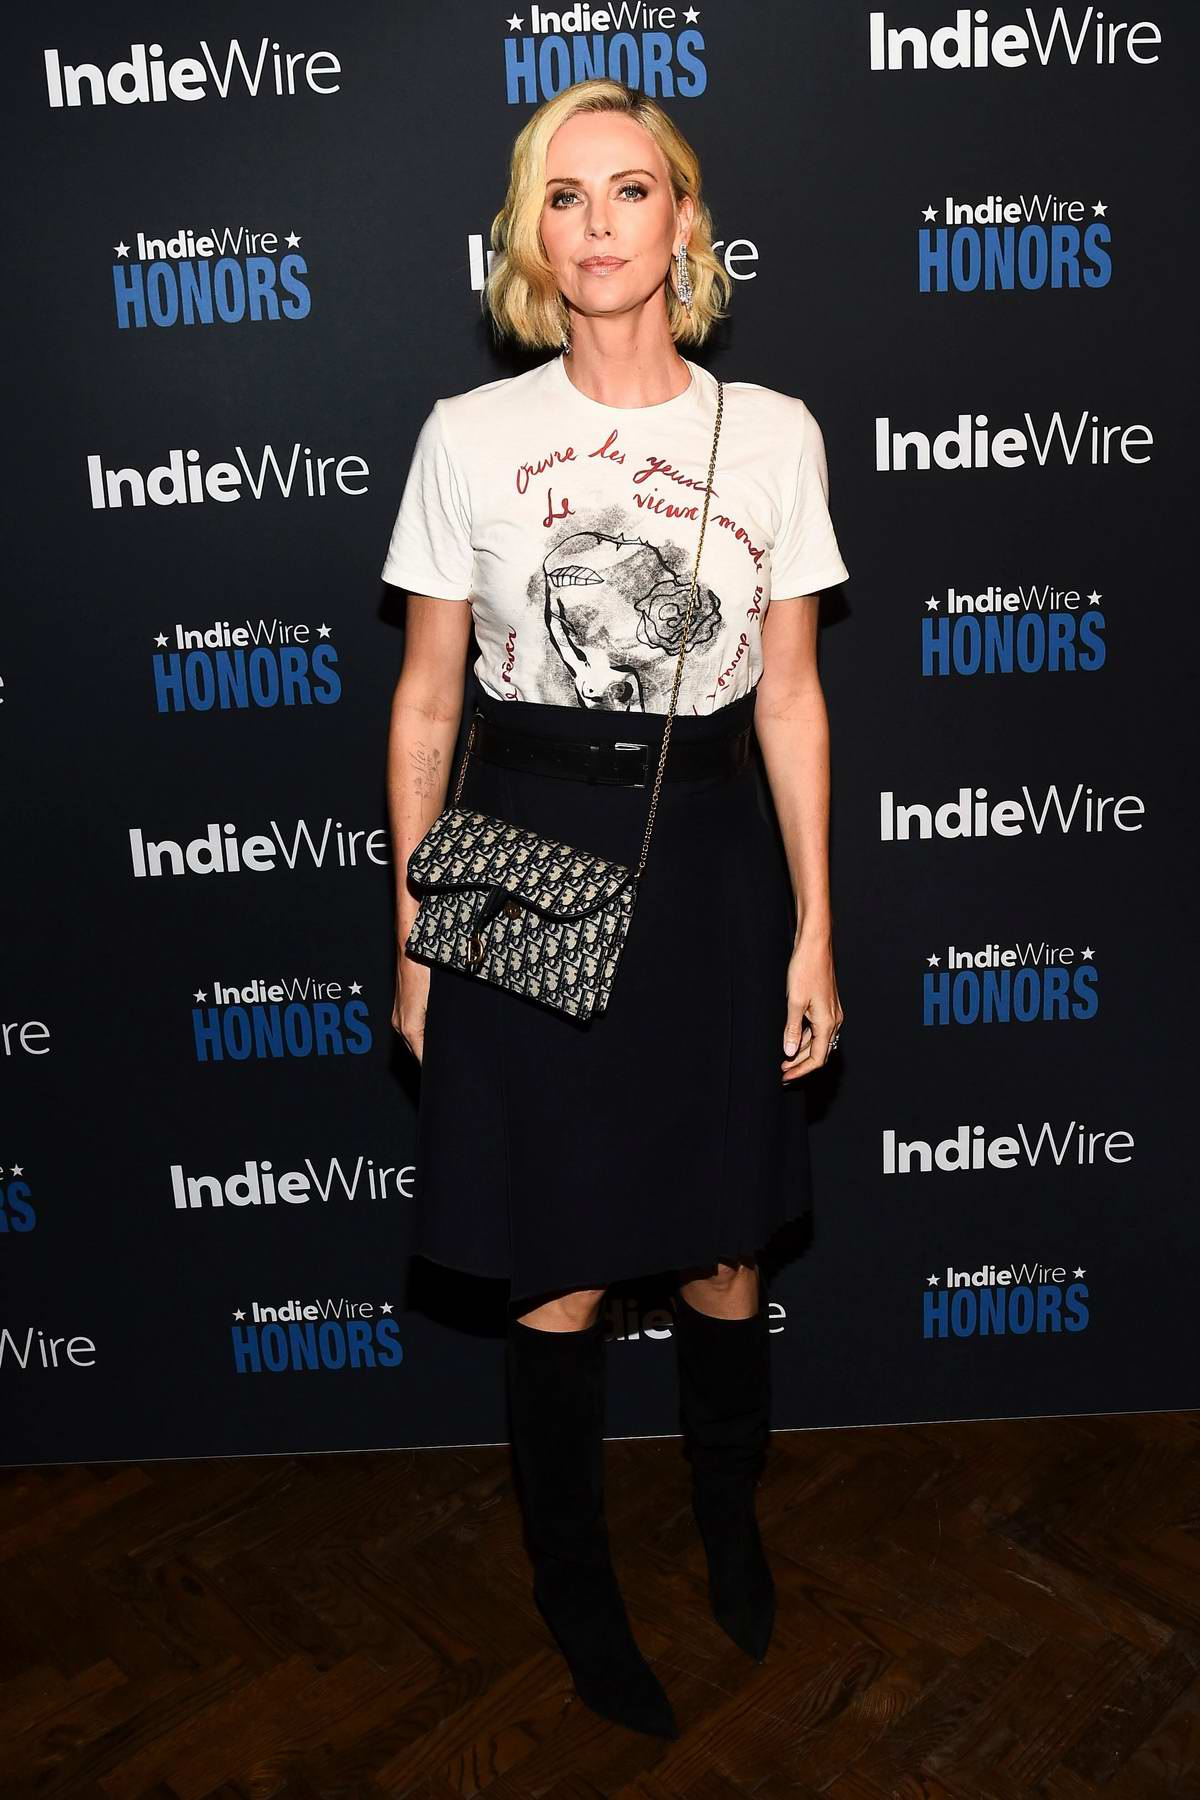 Charlize Theron attends the 2018 IndieWire Honors at No Name in Los Angeles